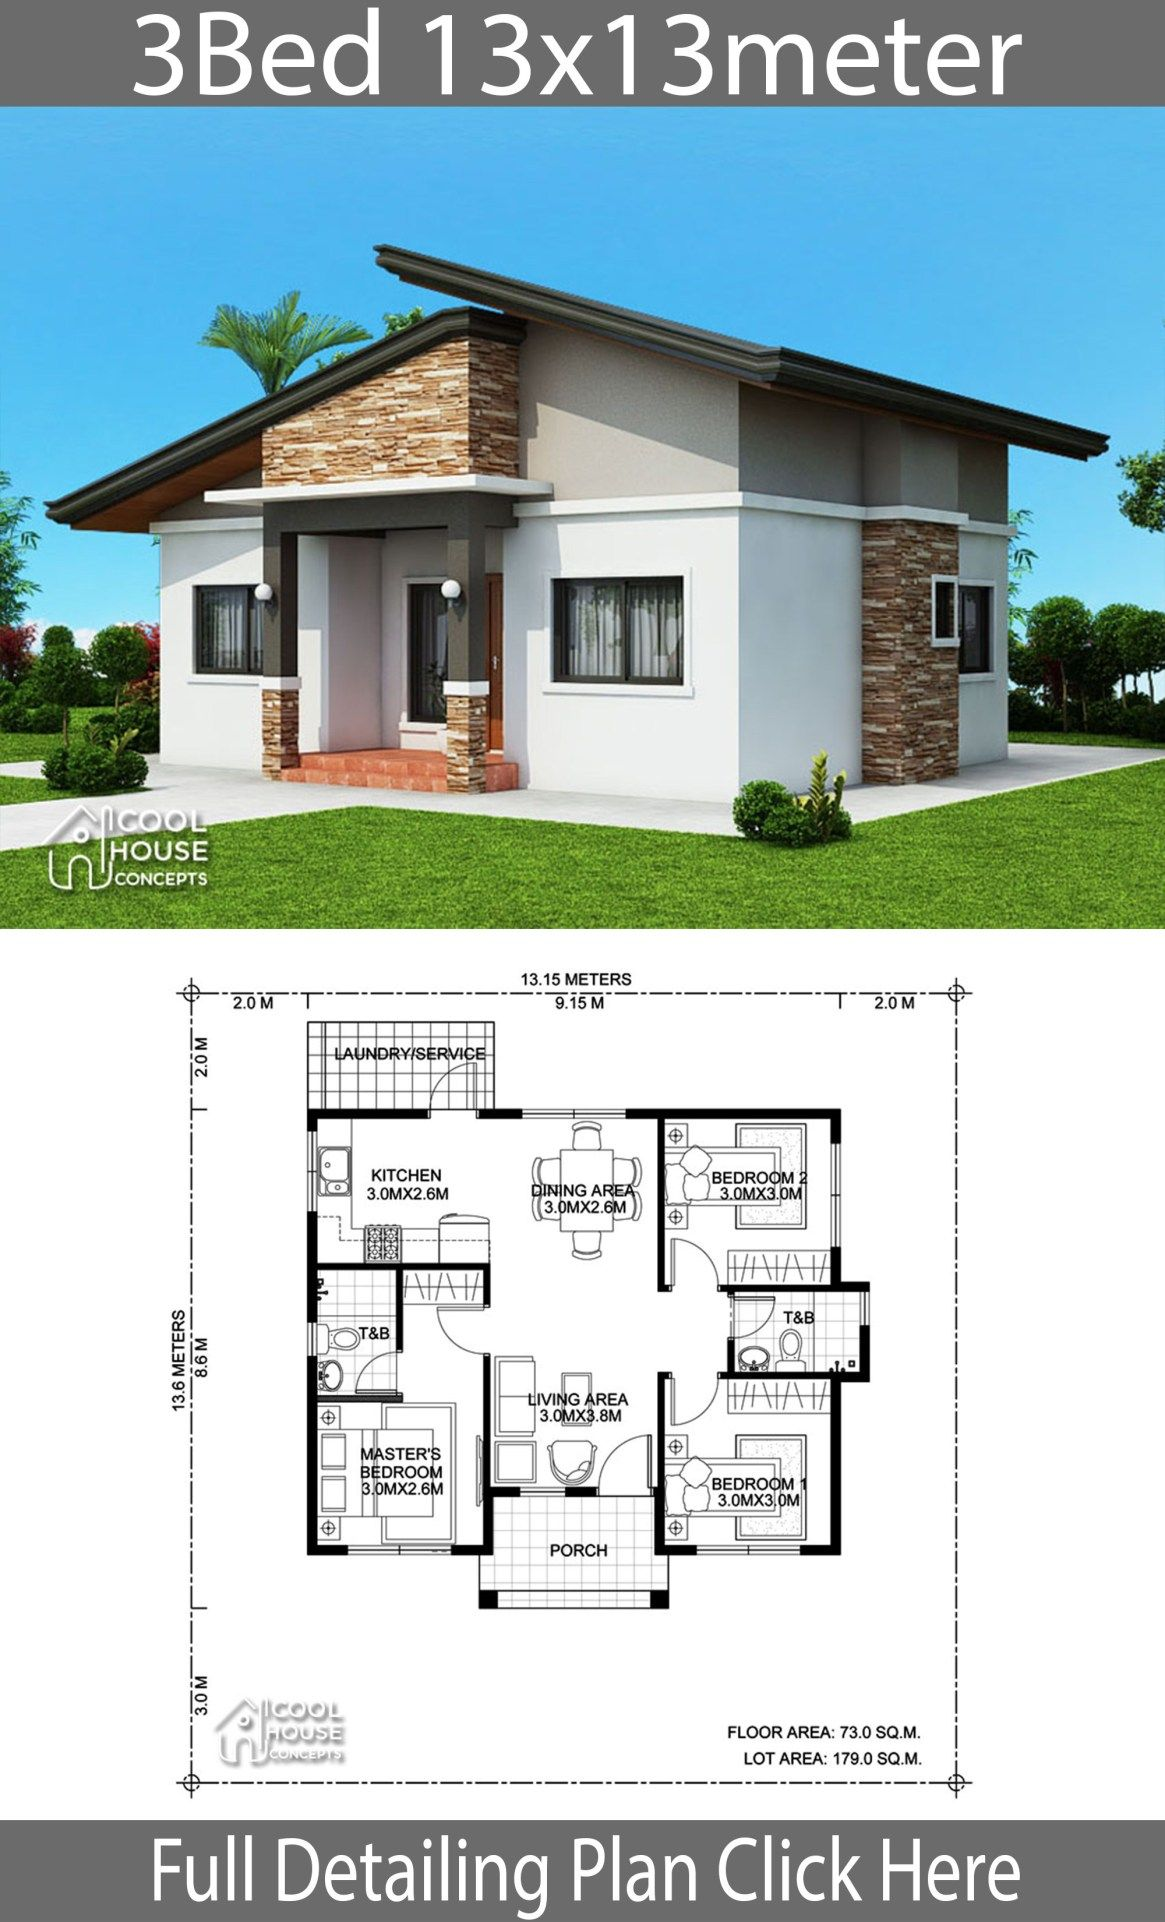 Home Design Plan 13x13m With 3 Bedrooms Home Design With Plansearch Bungalow House Plans Modern Bungalow House House Construction Plan